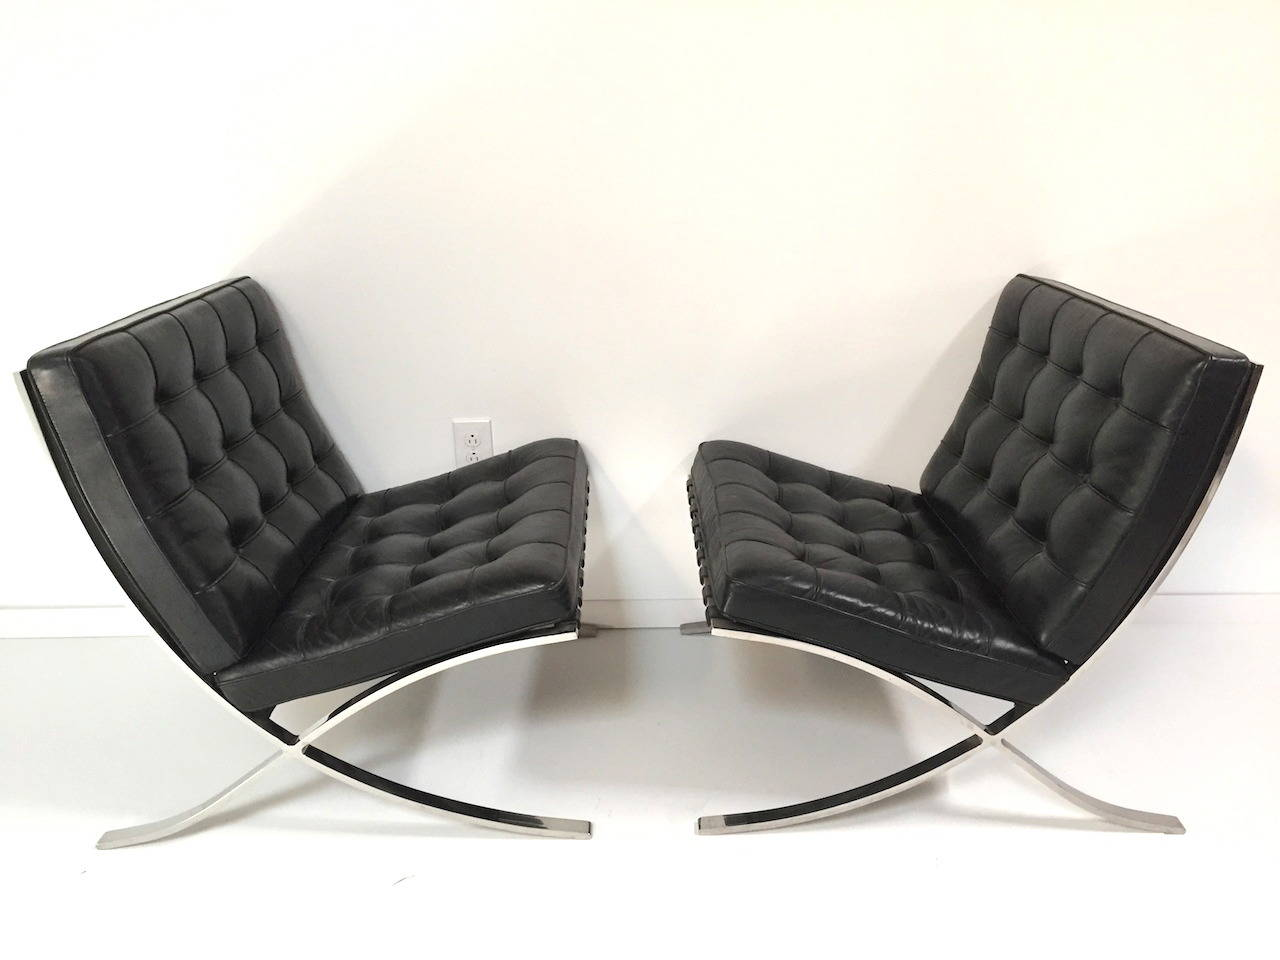 barcelona chair used reclining rocking canada pair of authentic mies van der rohe black leather